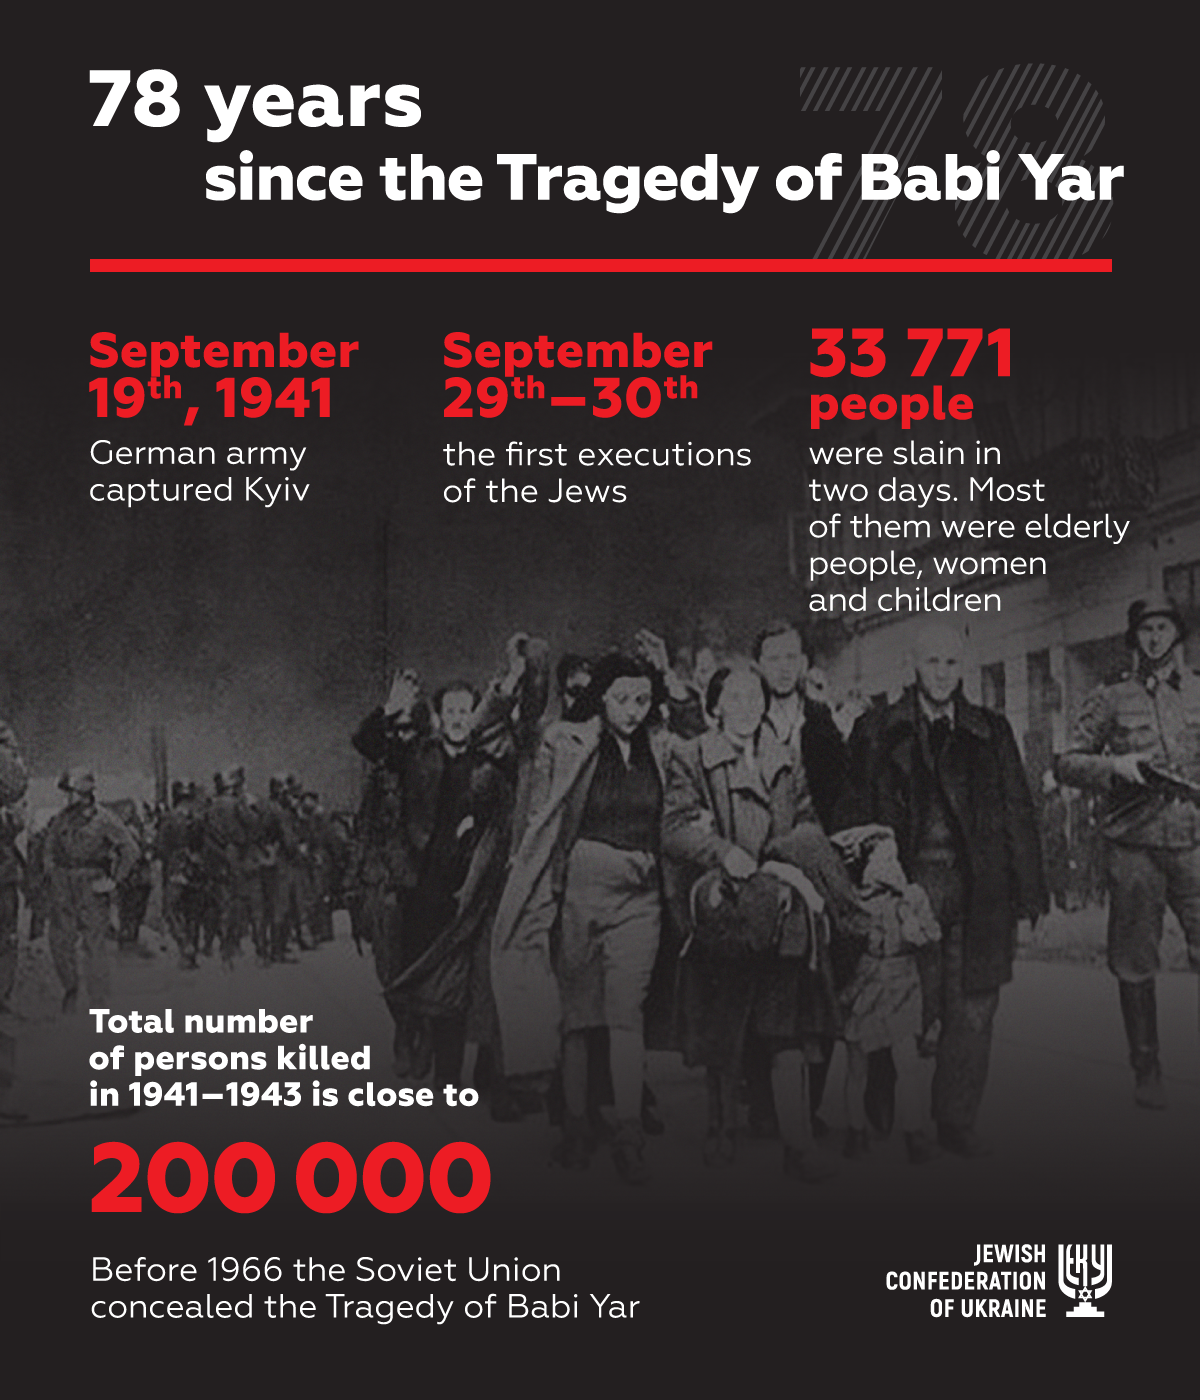 78 years since Babi Yar tragedy